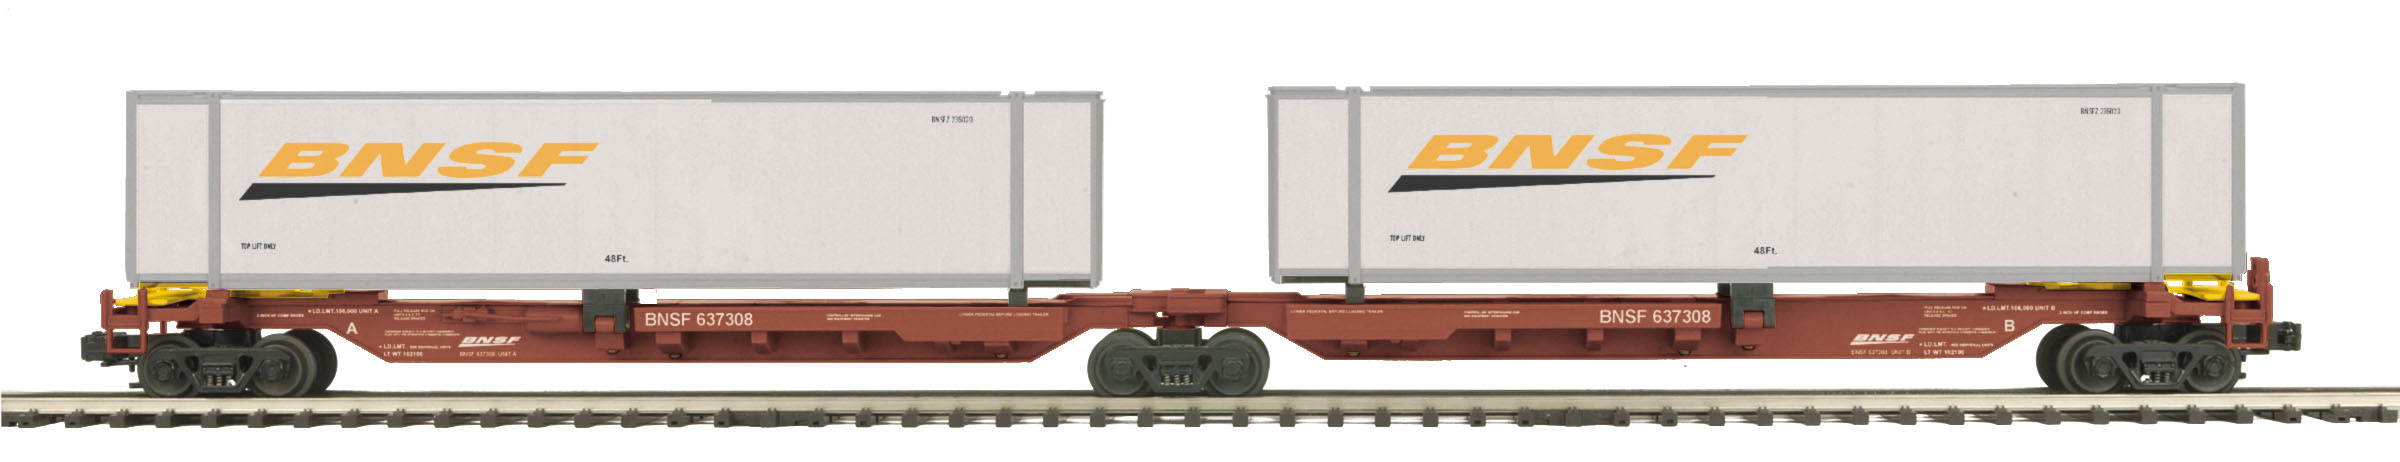 BNSF 2-Car Spine Car Set with (2) 48' Containers image